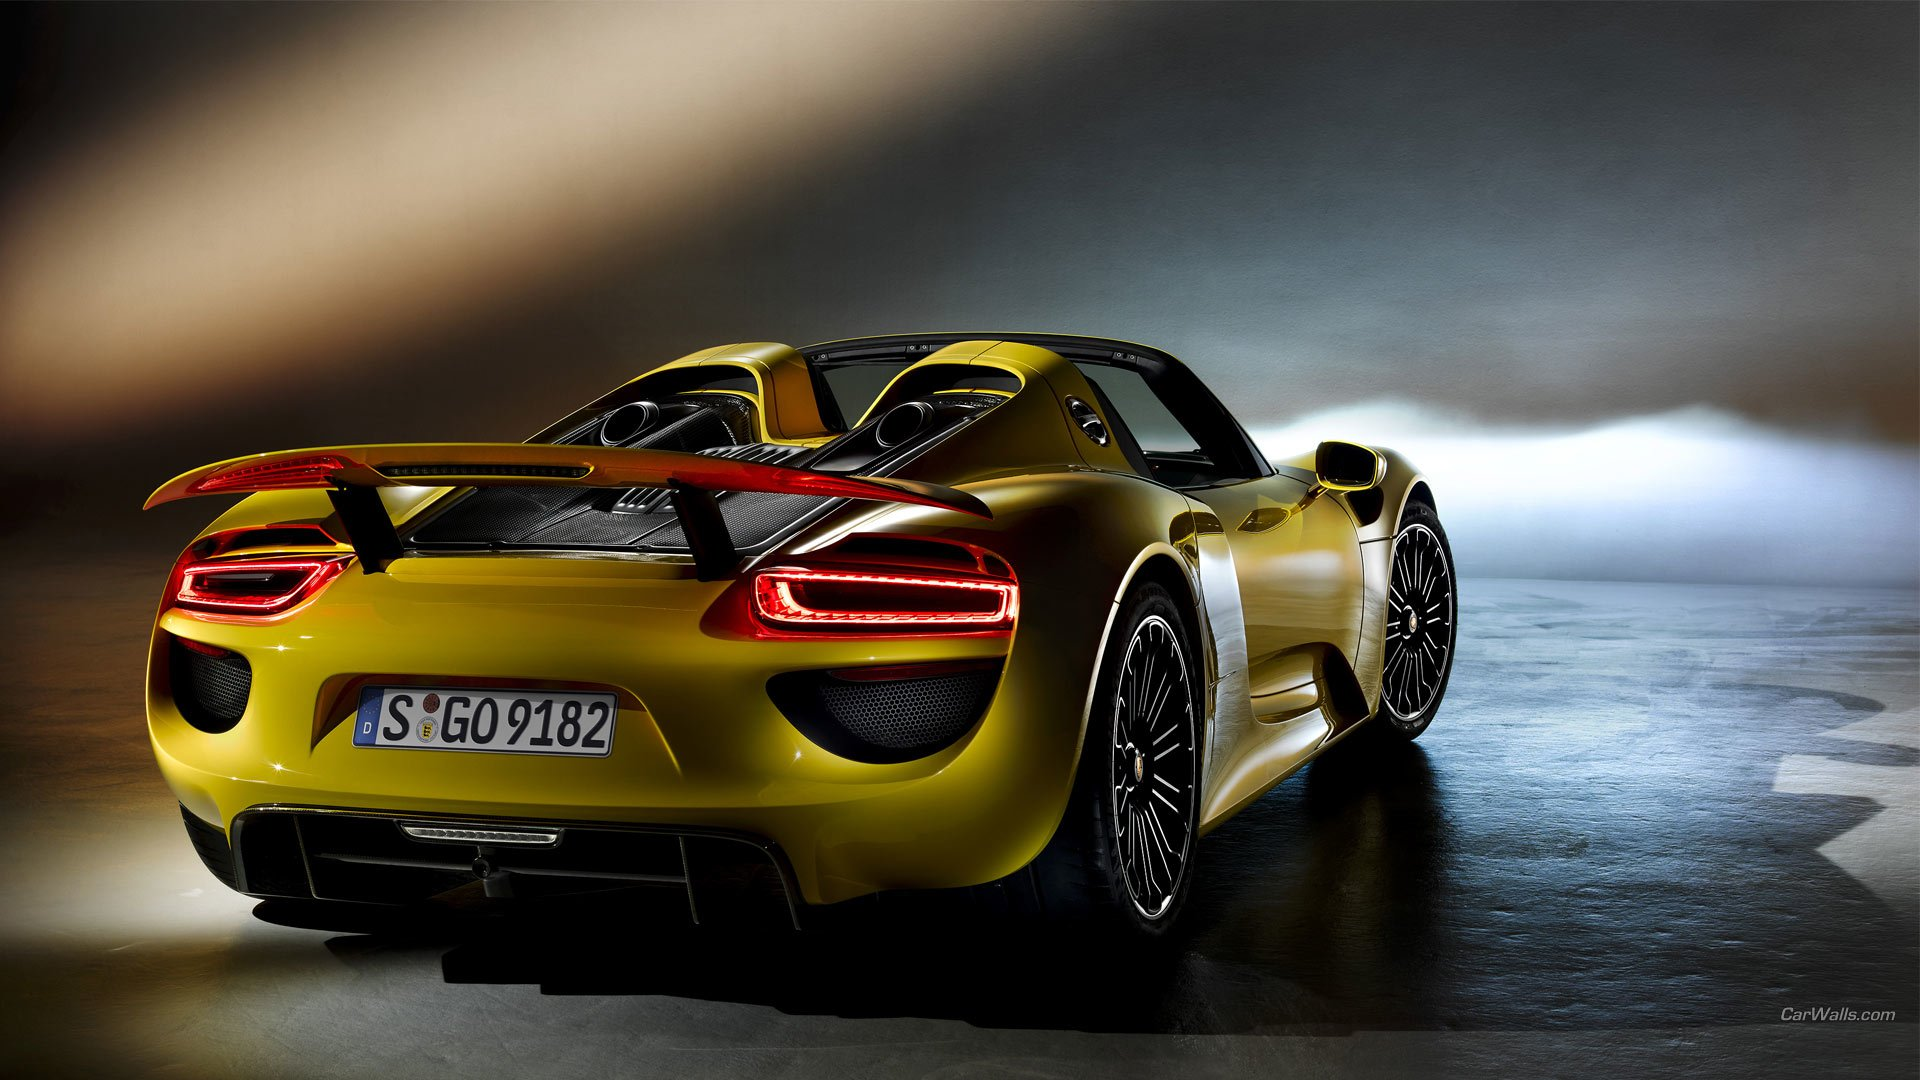 66 Porsche 918 Spyder Hd Wallpapers Background Images